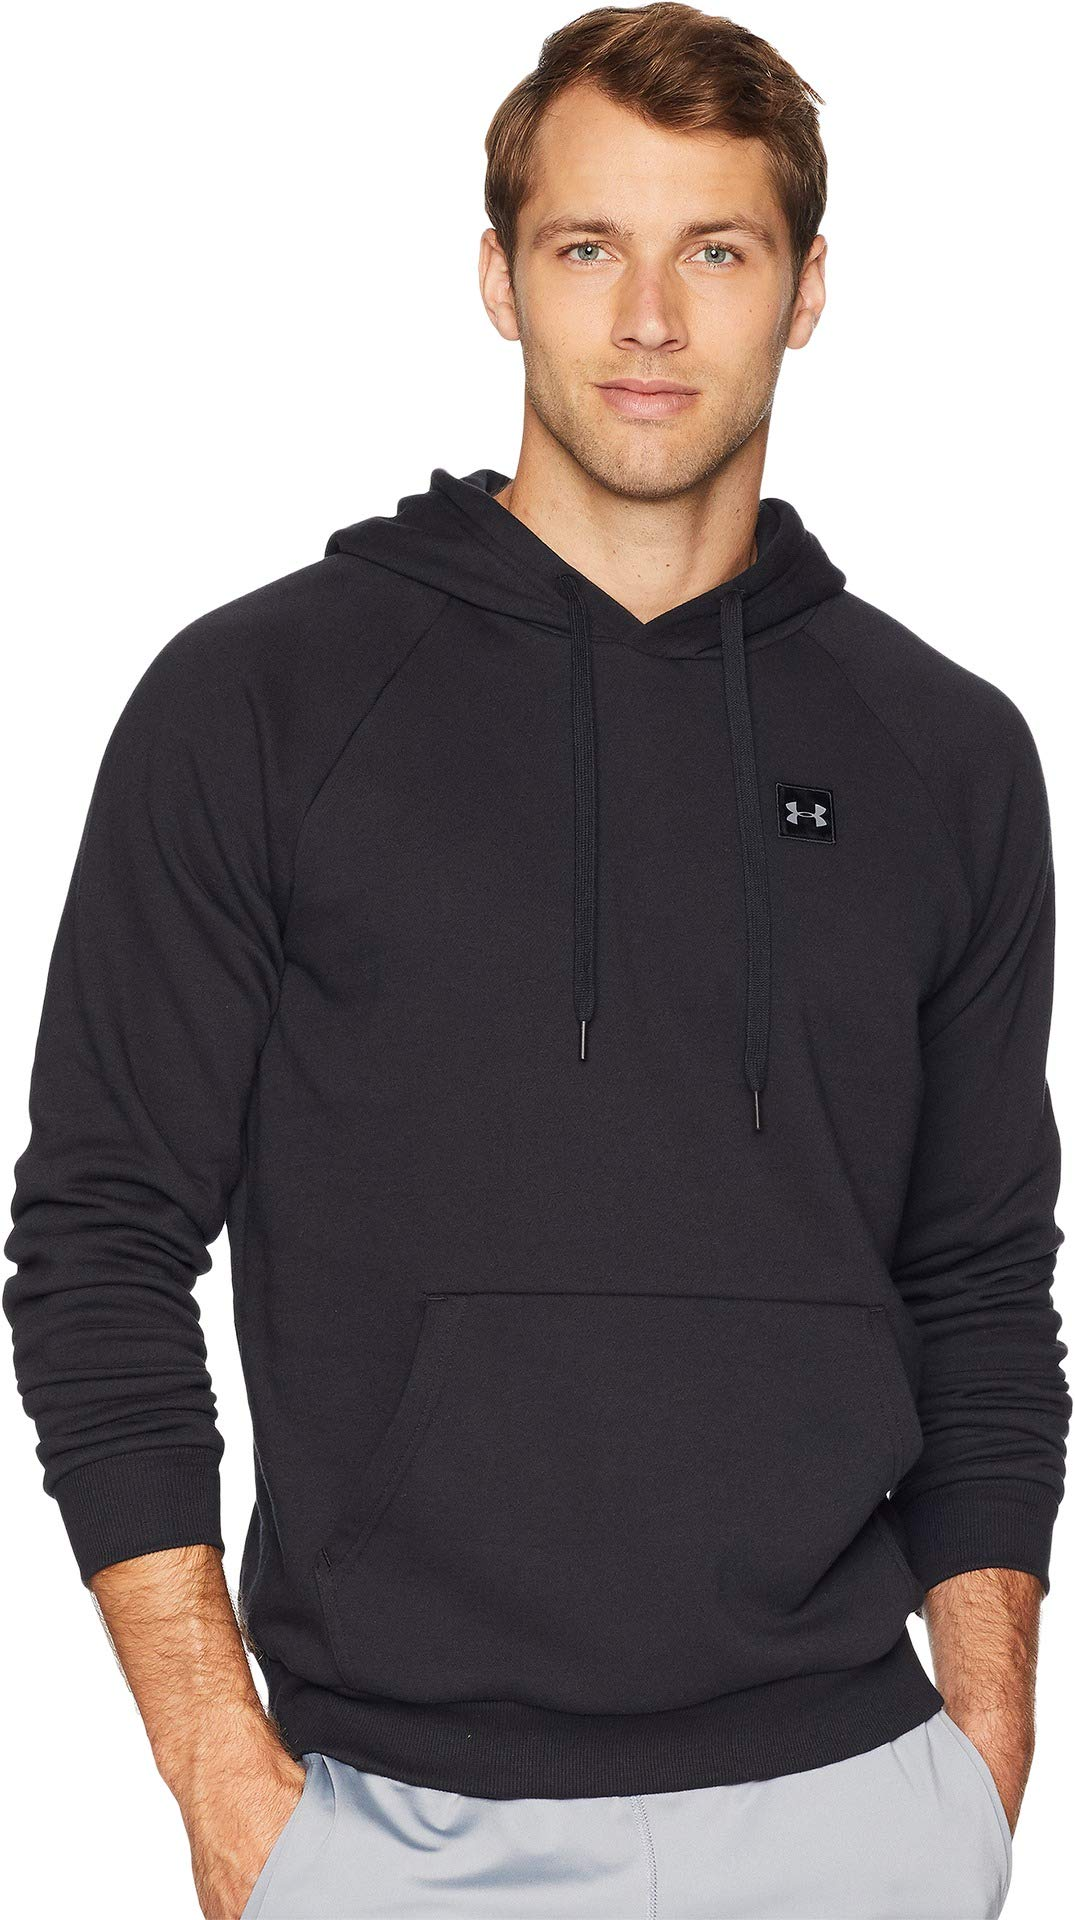 Under Armour Men's Rival Fleece Hoodie, Black (001)/Black, 3X-Large by Under Armour